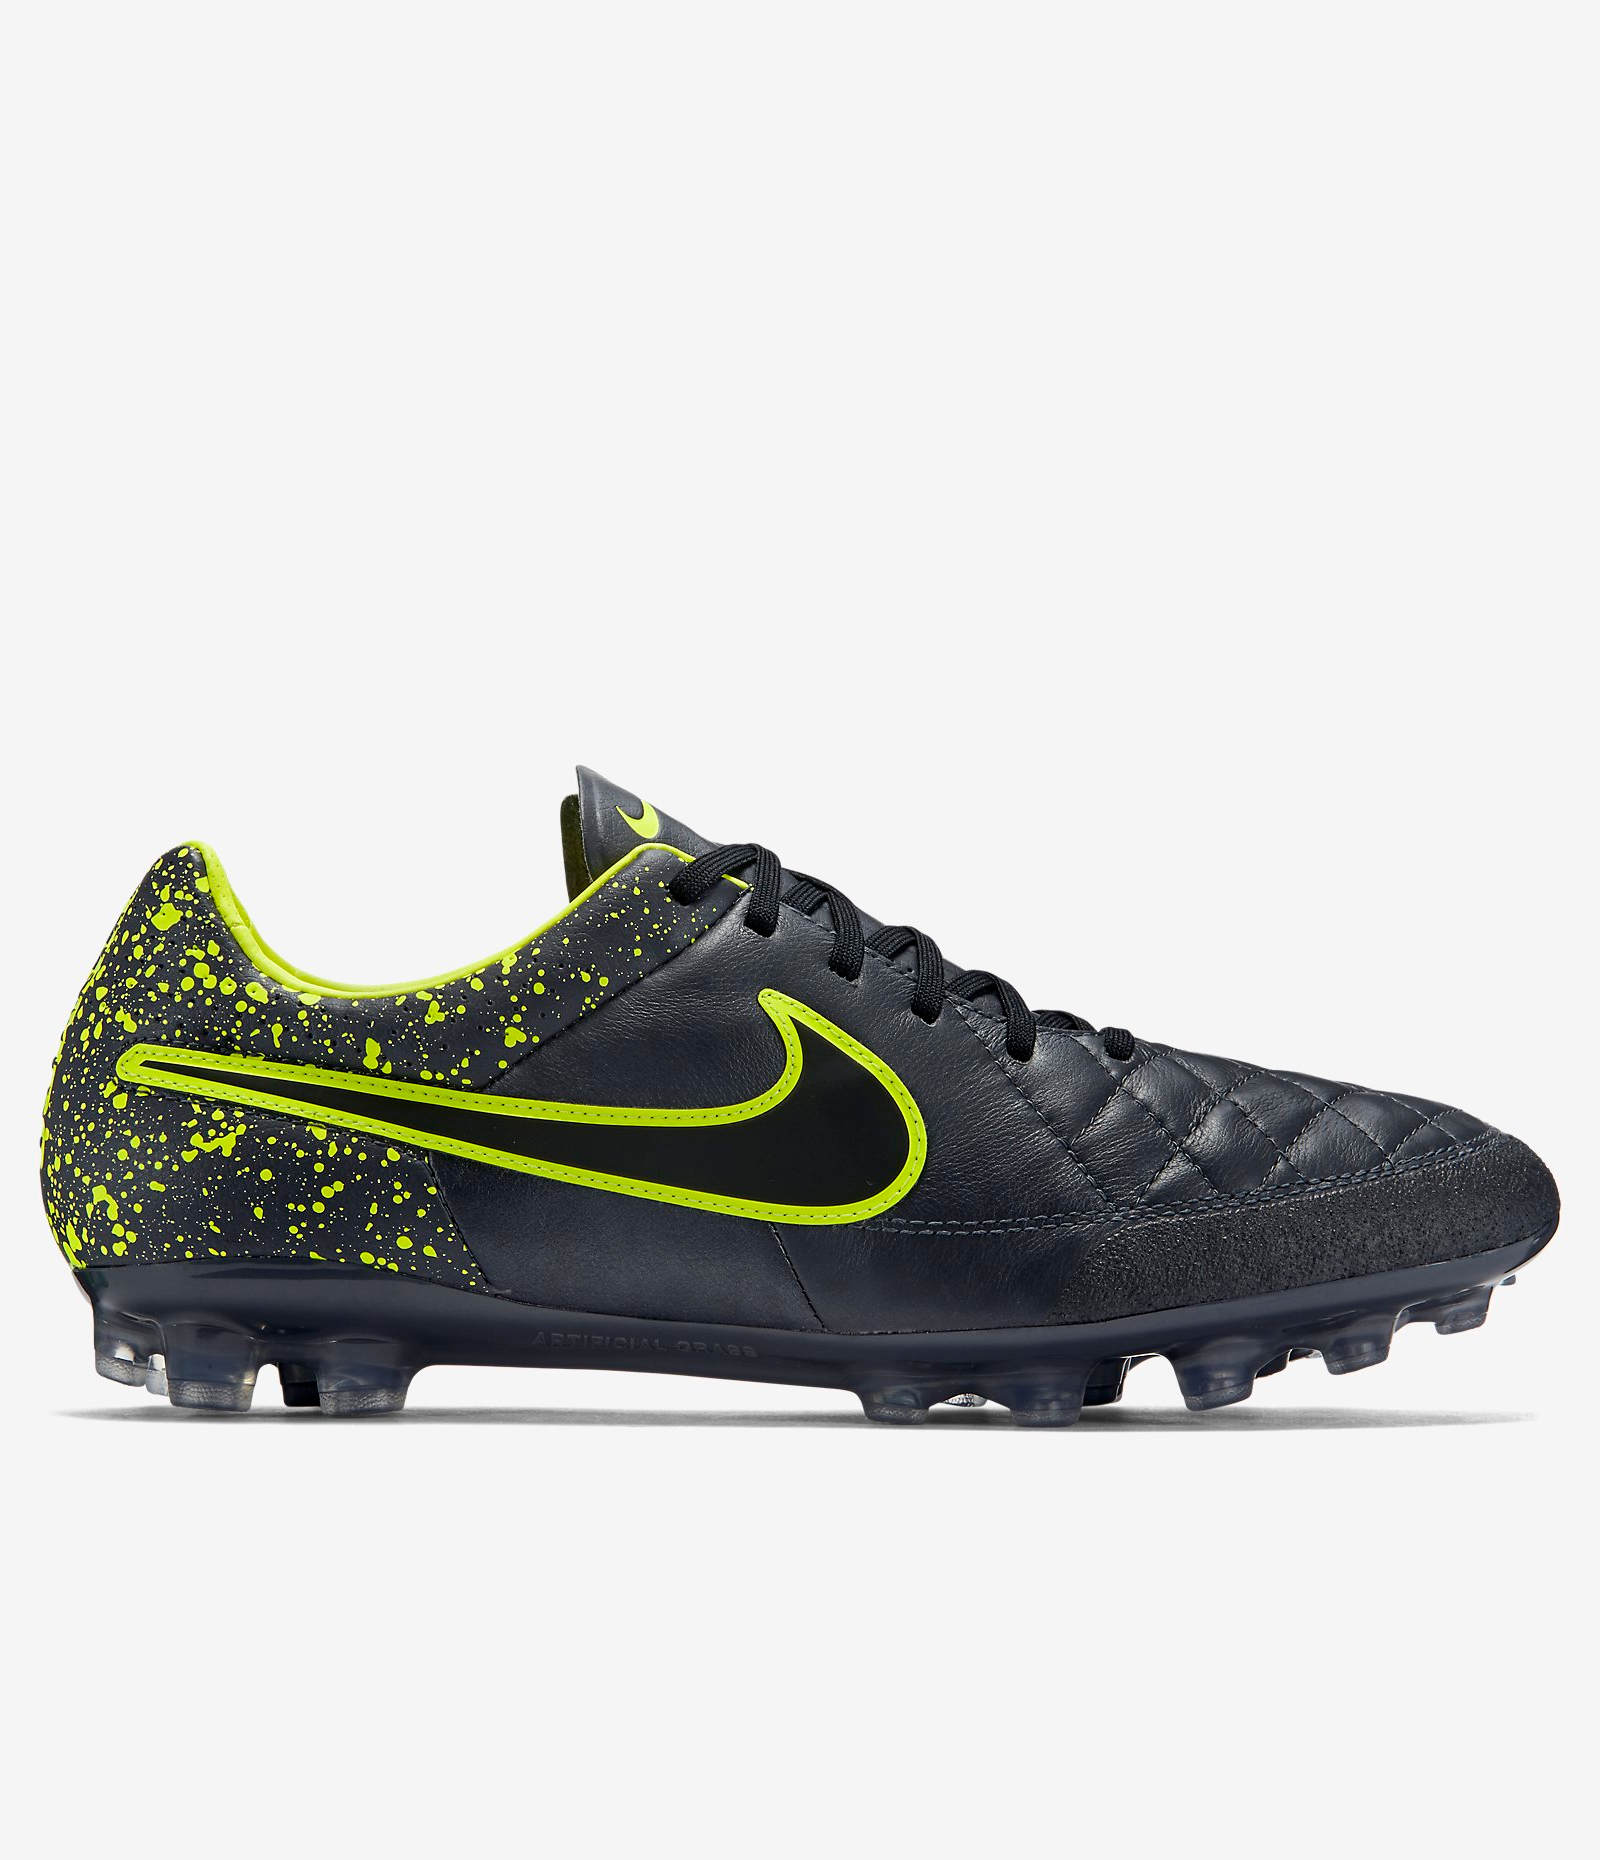 Football Shoes For Artificial Turf 28 Images Football